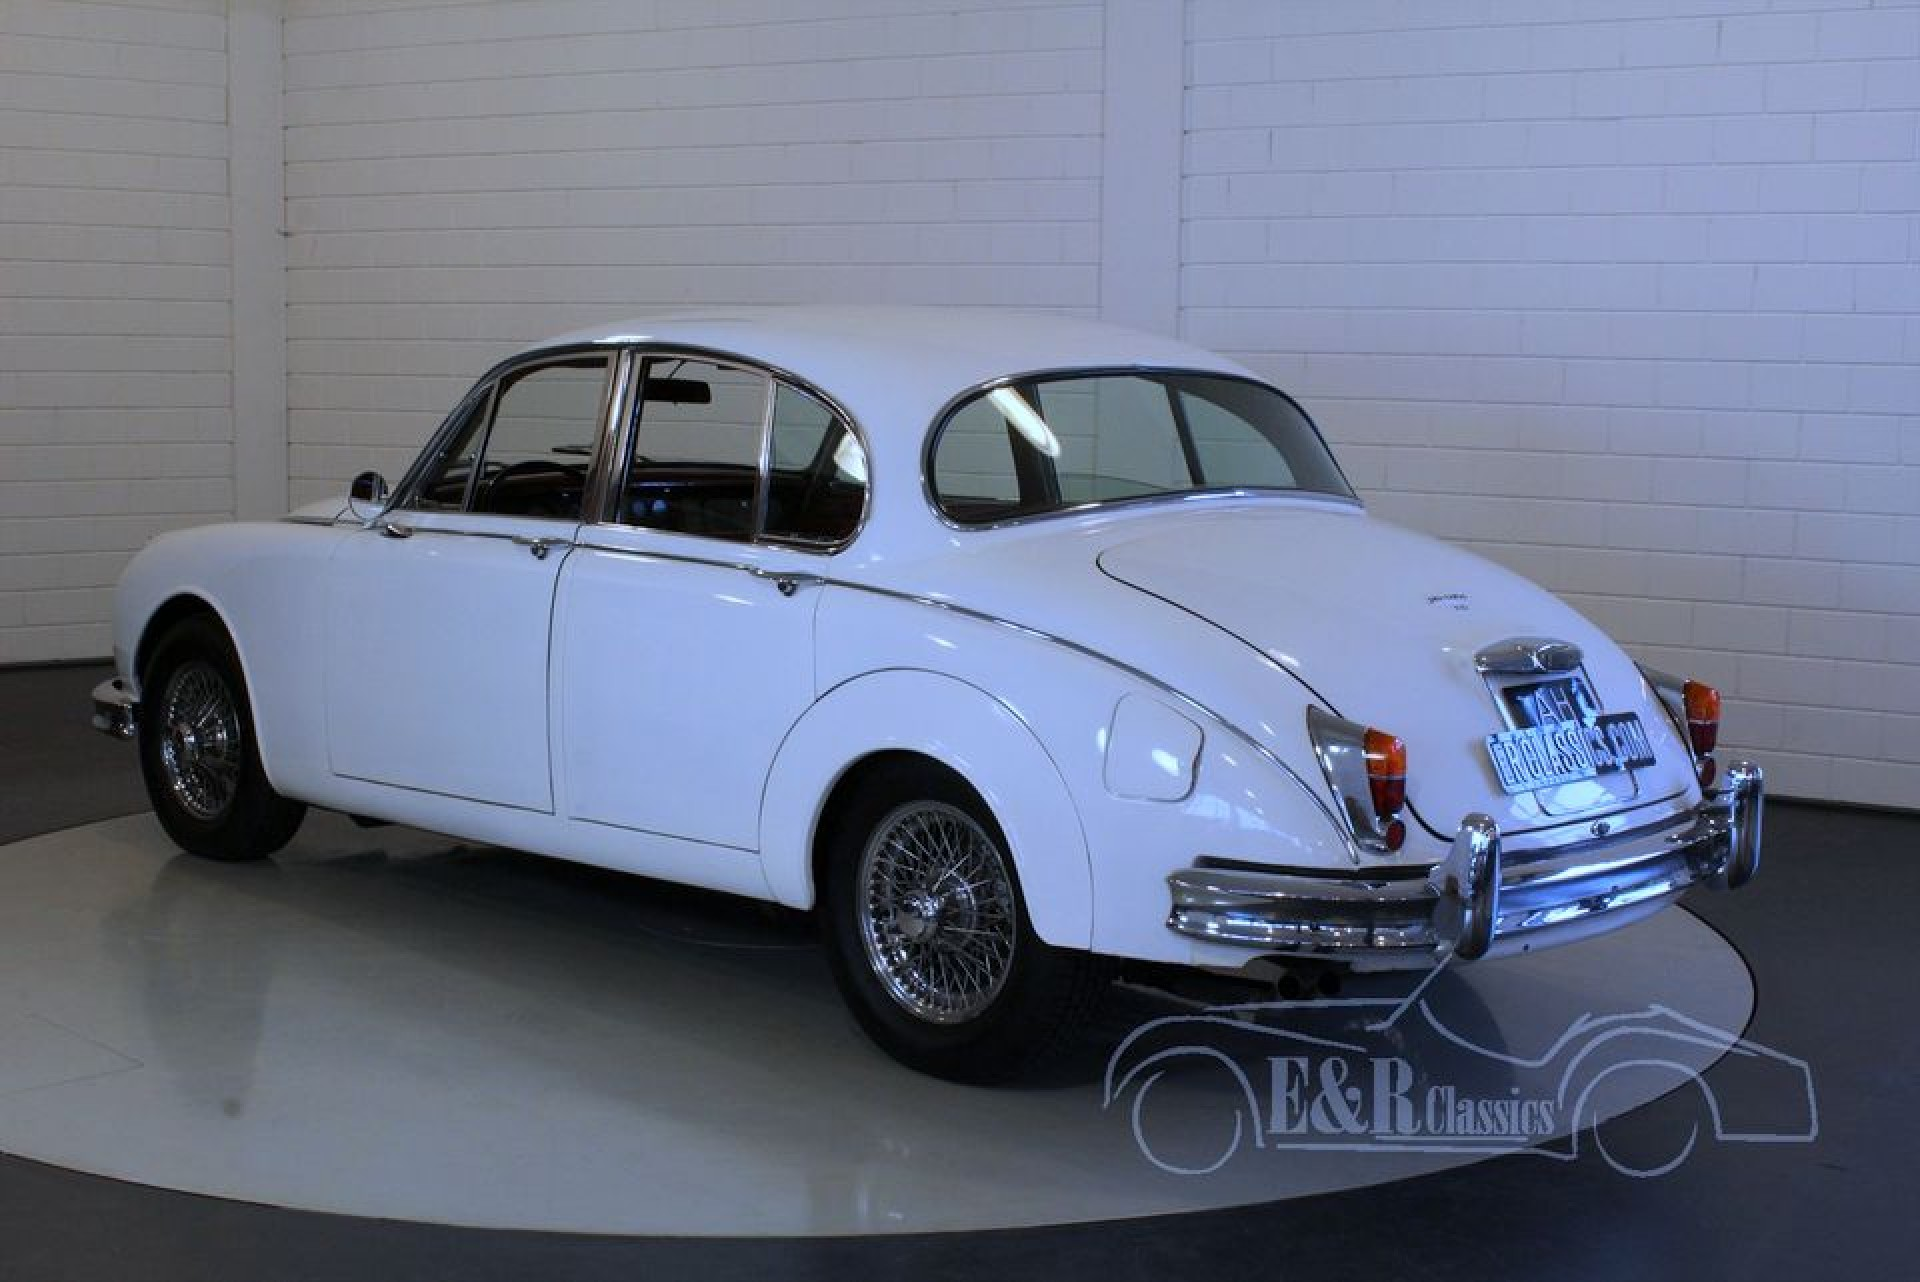 jaguar mk2 saloon 1960 vendre erclassics. Black Bedroom Furniture Sets. Home Design Ideas